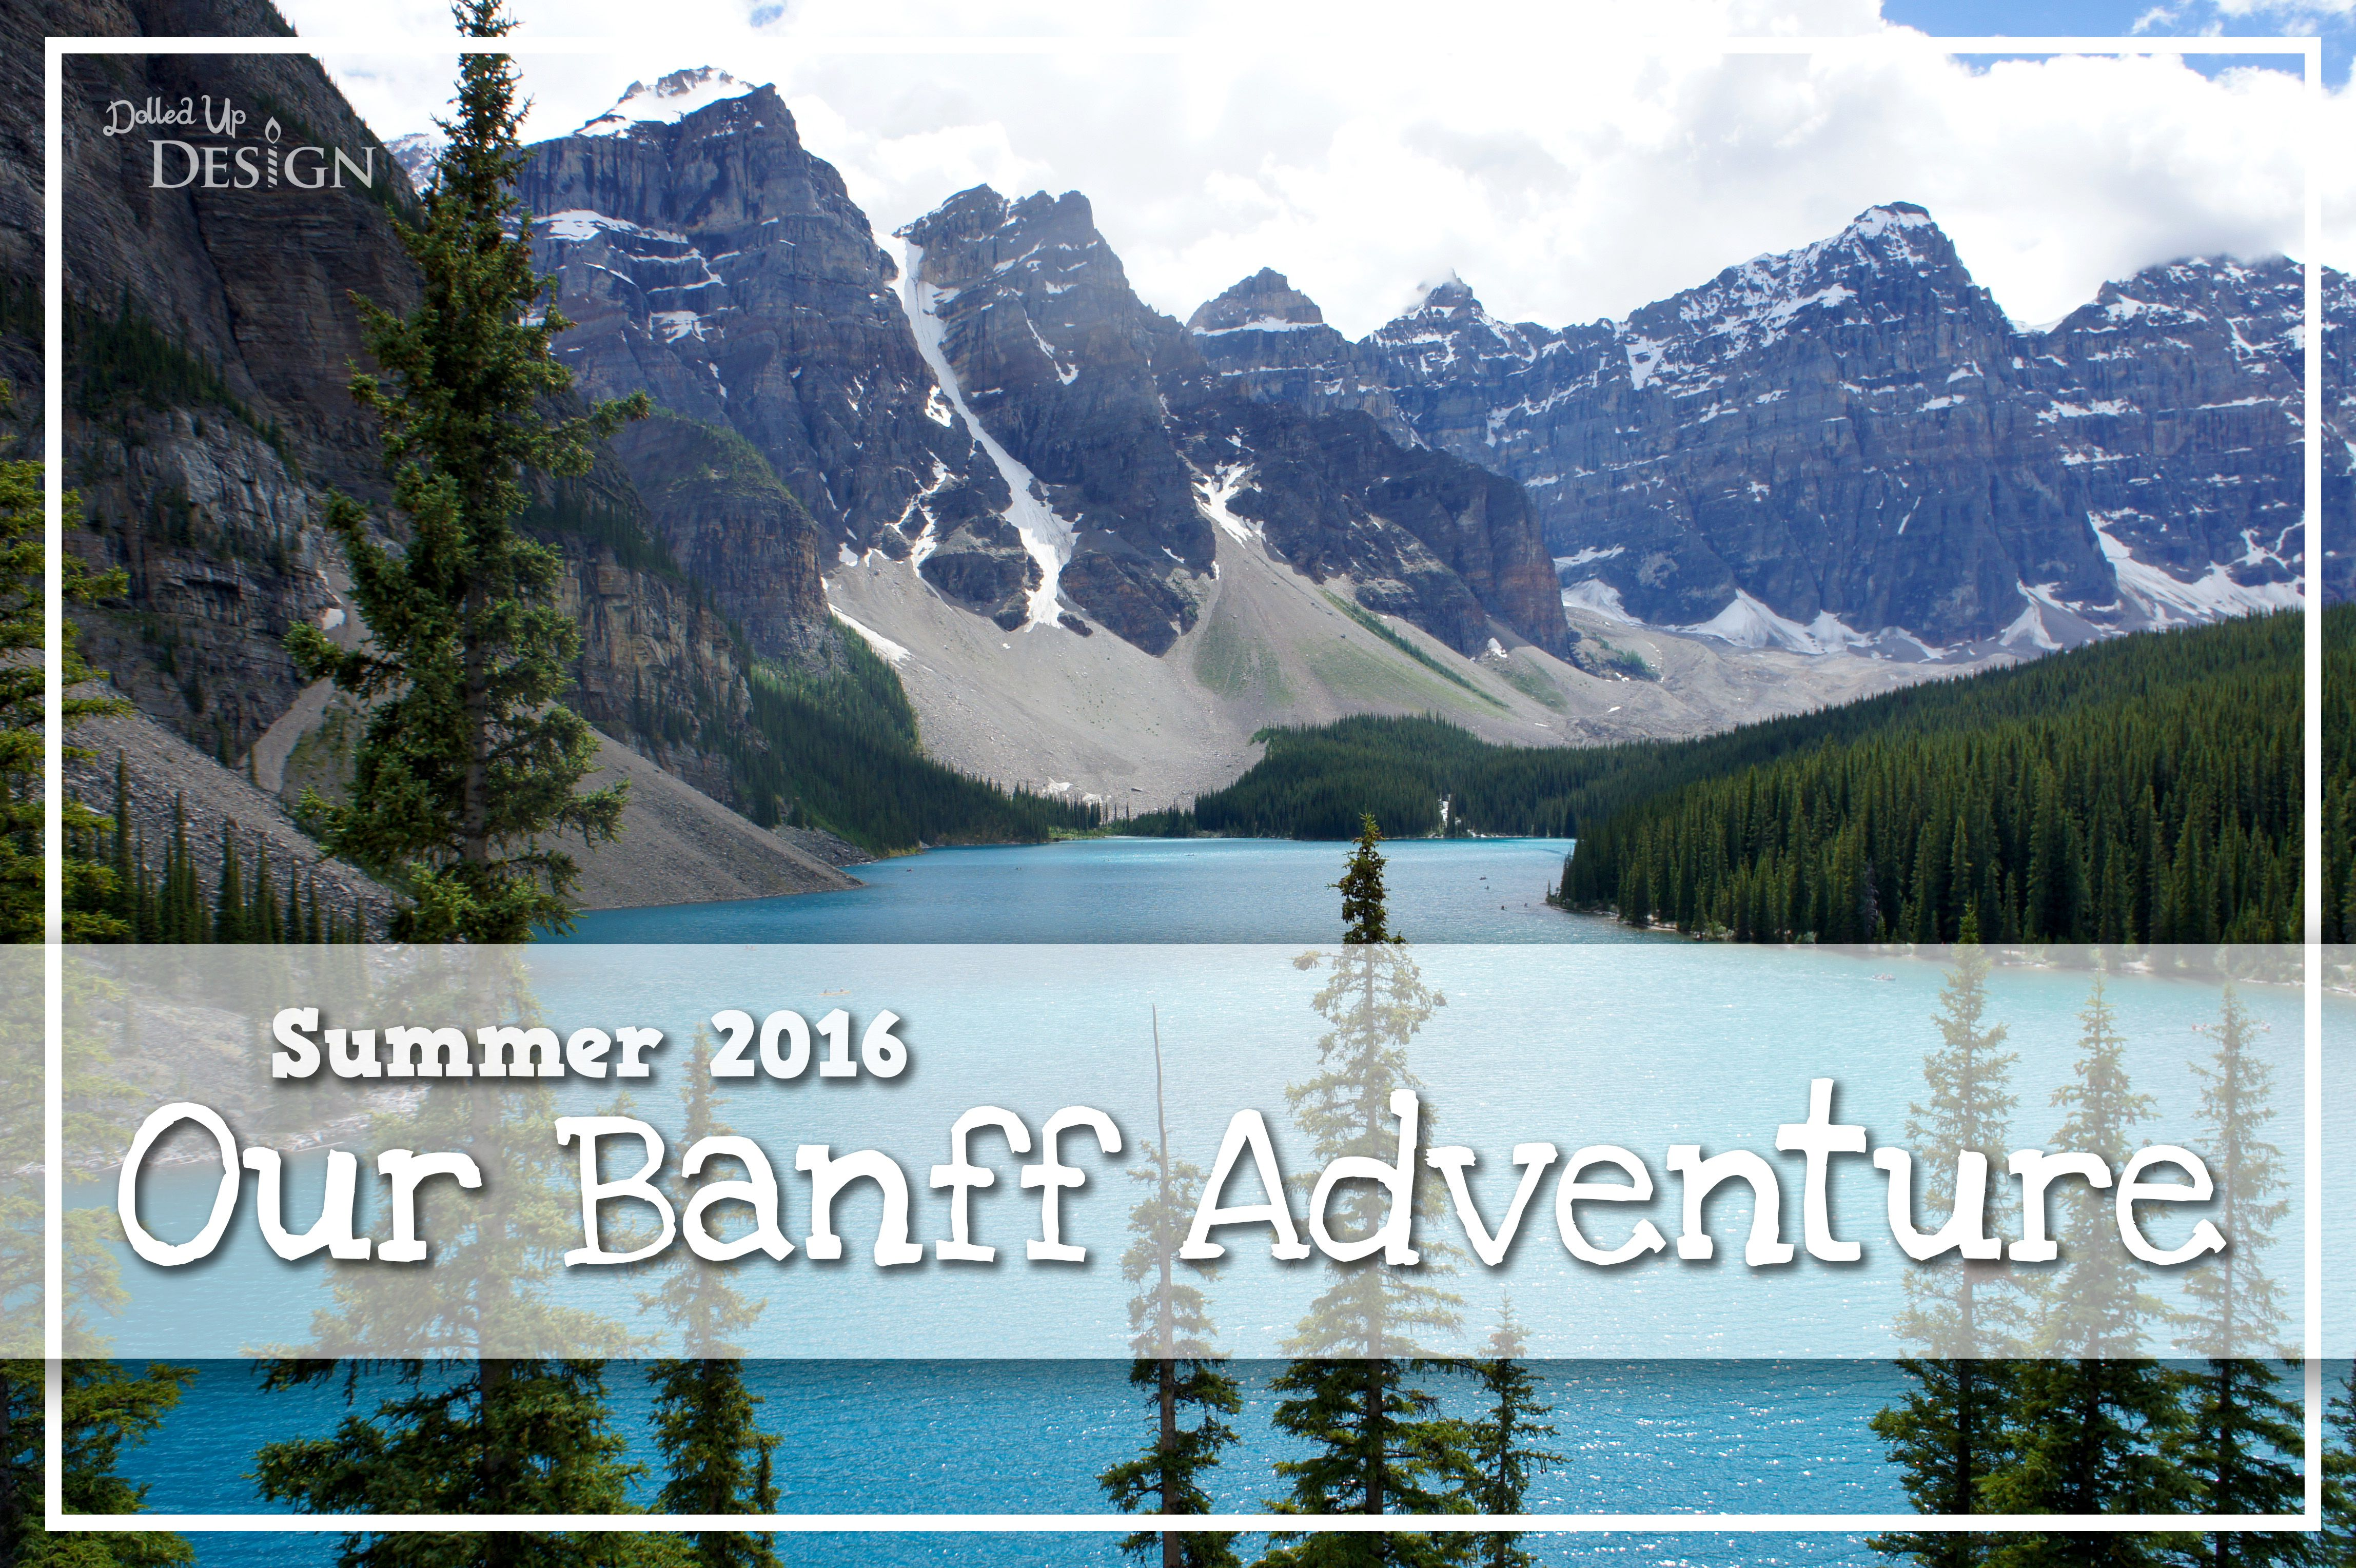 Our Banff Adventure Johnston Canyon Campground Review With Images Campground Reviews Johnston Canyon Parks Canada